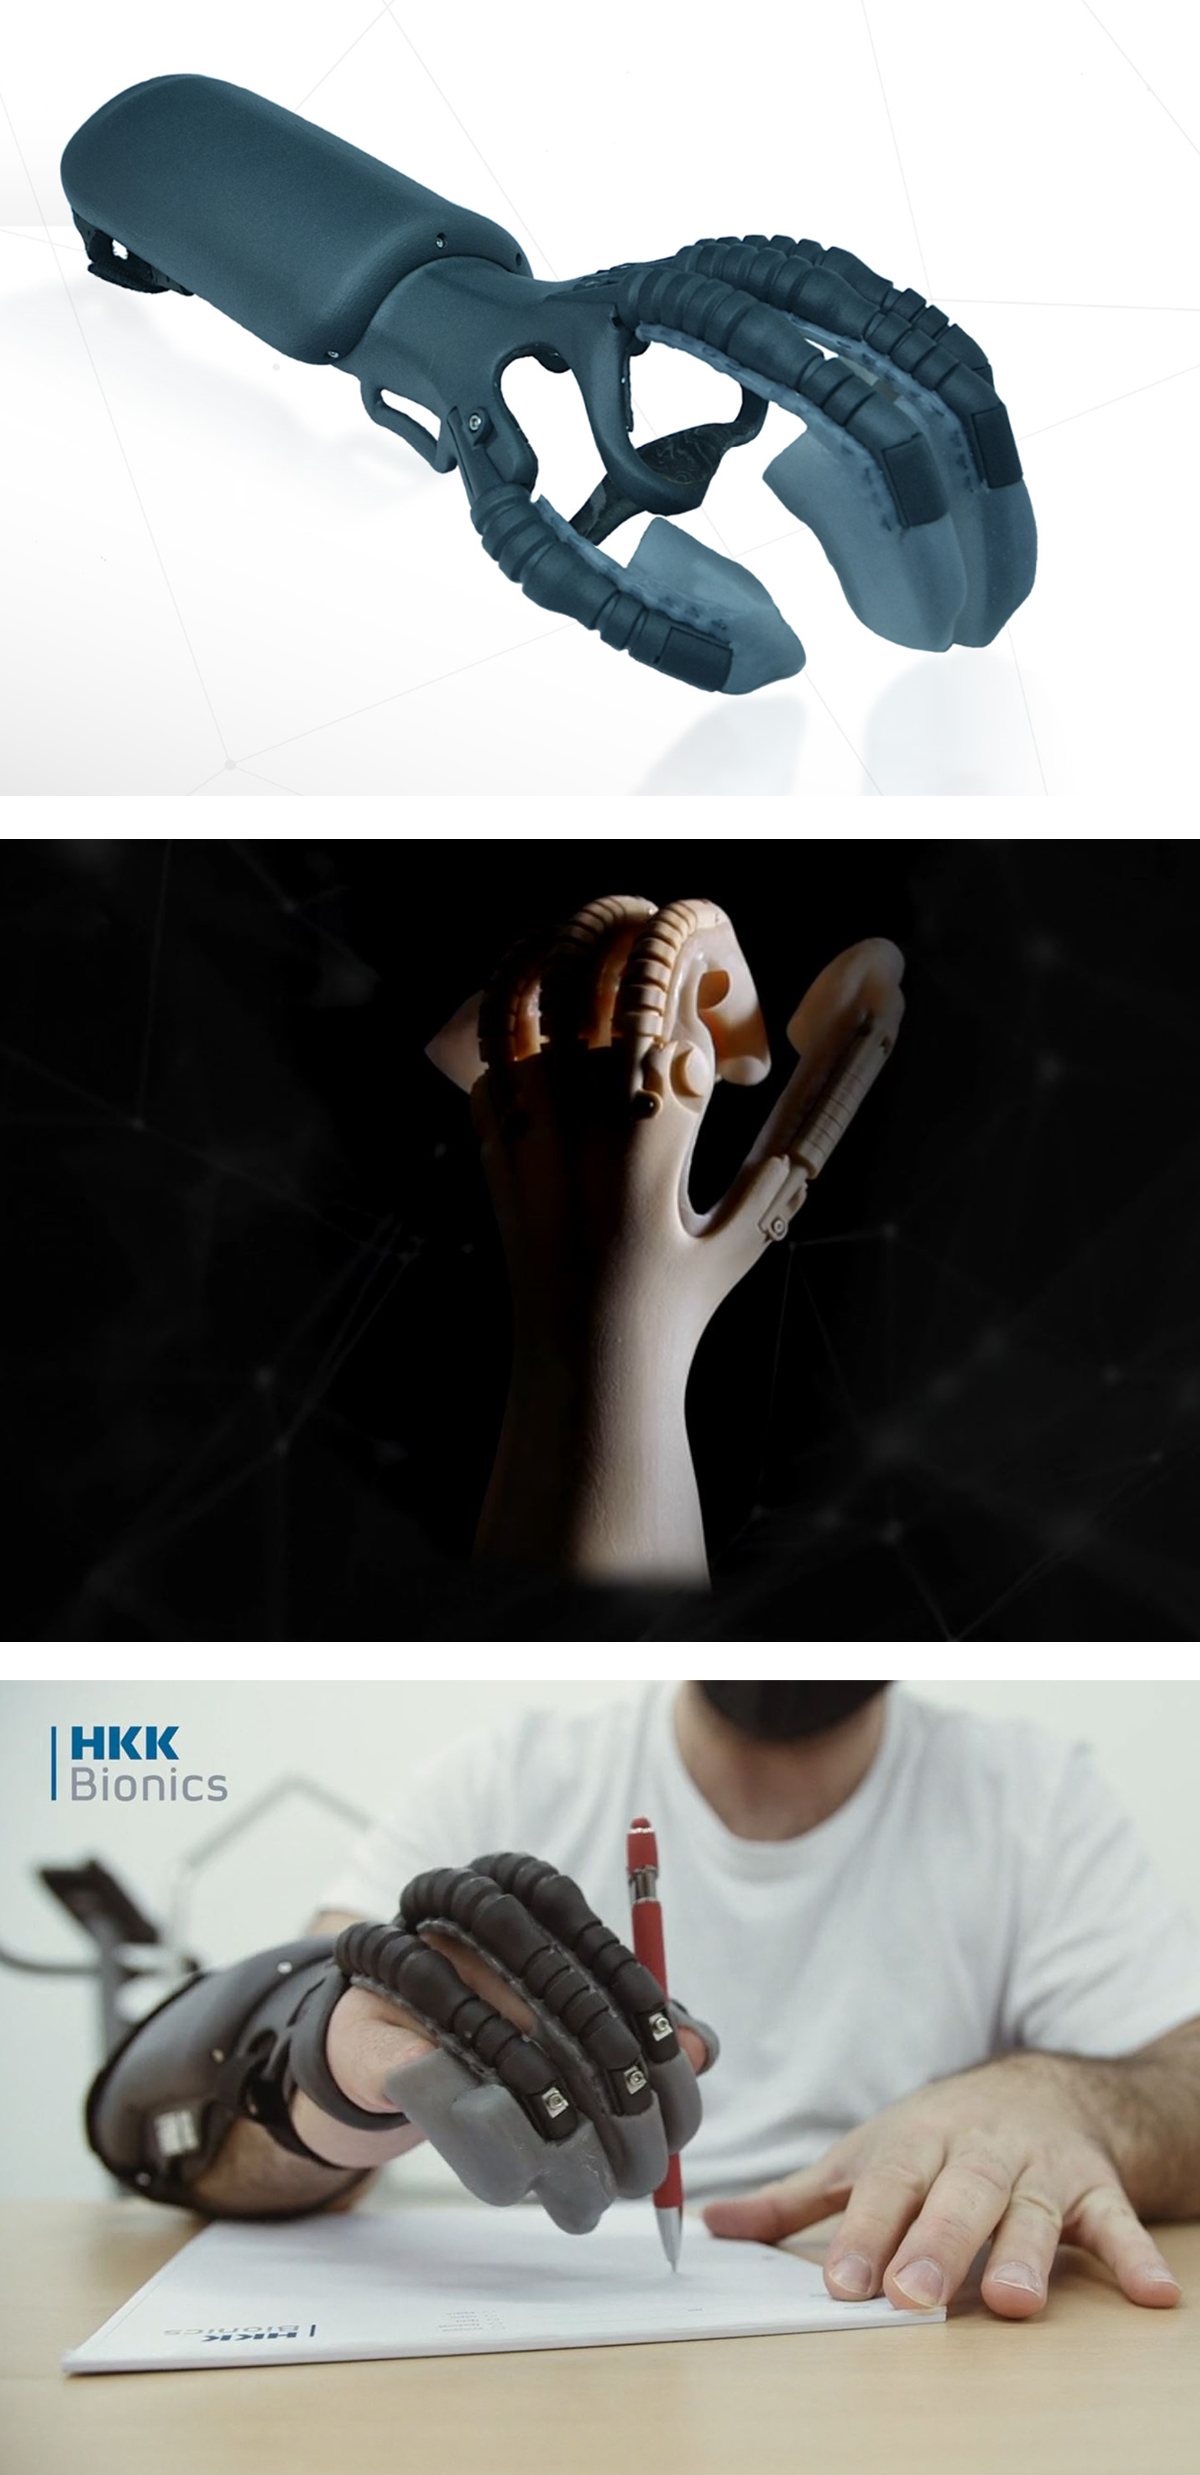 "HKK Bionics' Exomotion Hand One bionic hand orthosis, which can be best described as a ""motorized glove"". Image via Formnext Connect."